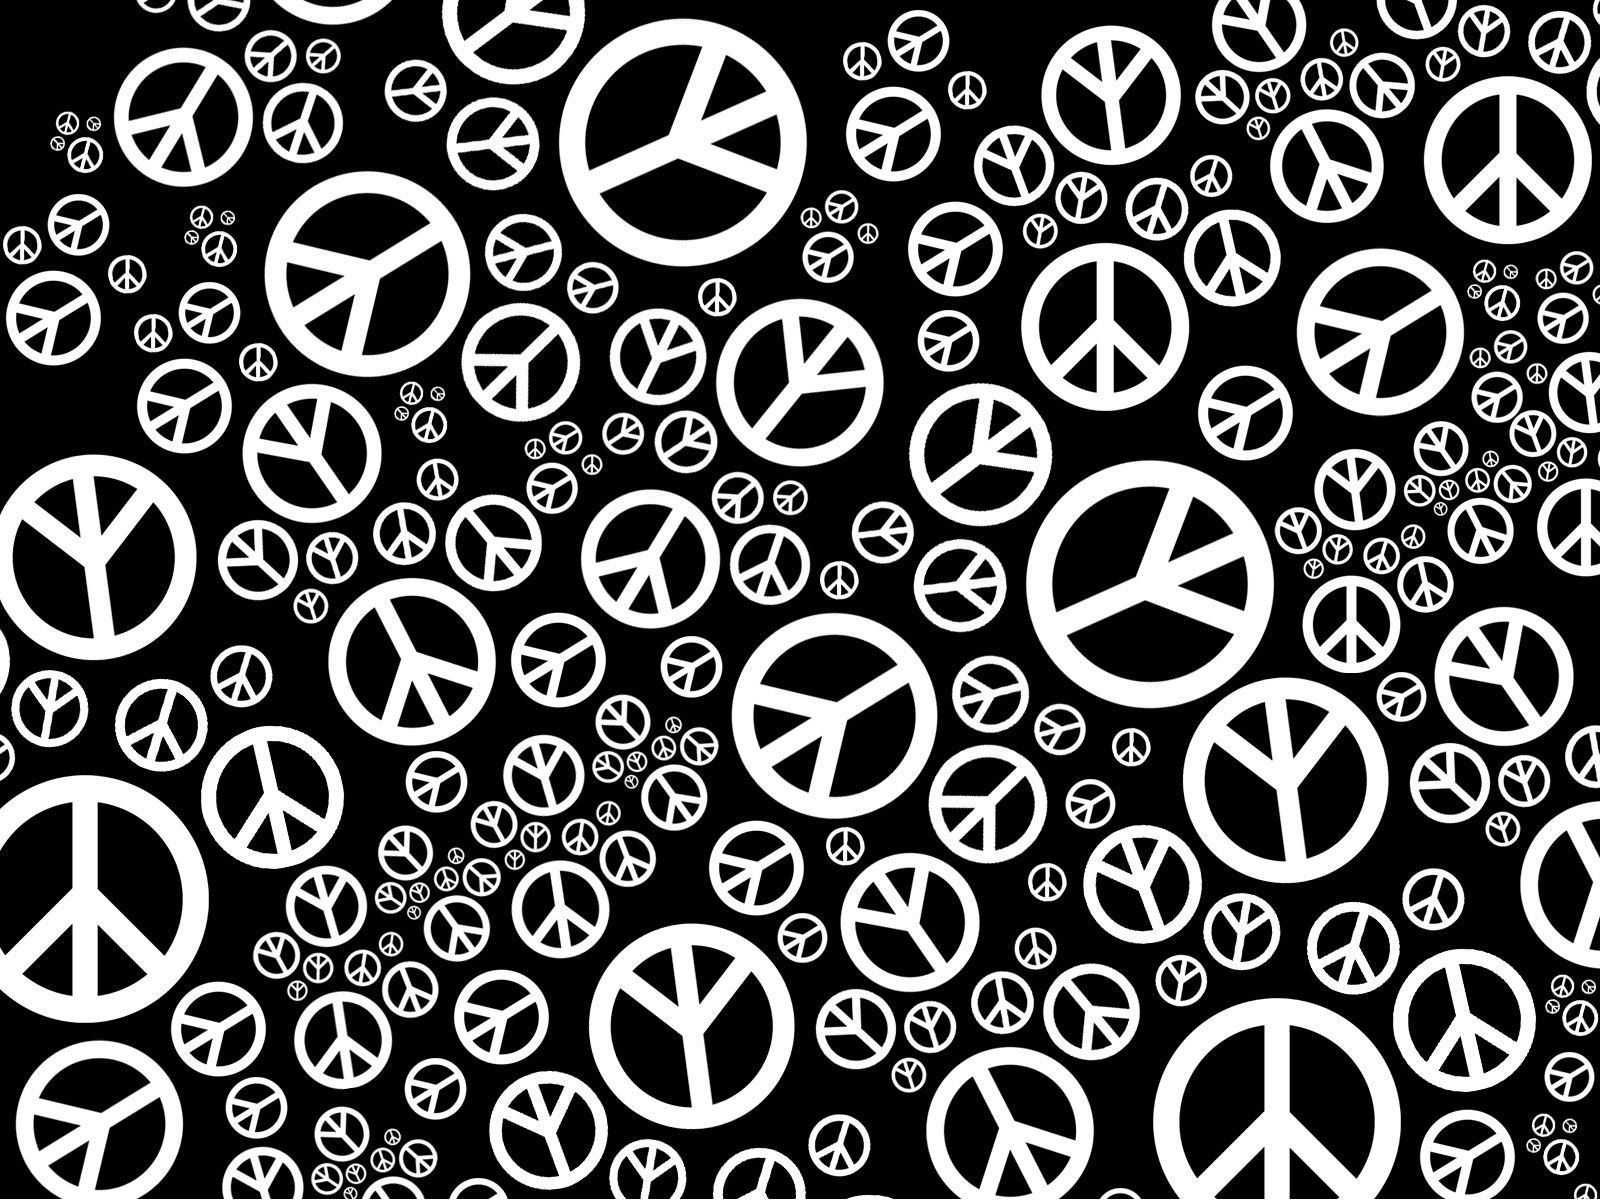 55 Peace Sign Wallpapers   Download at WallpaperBro 1600x1200